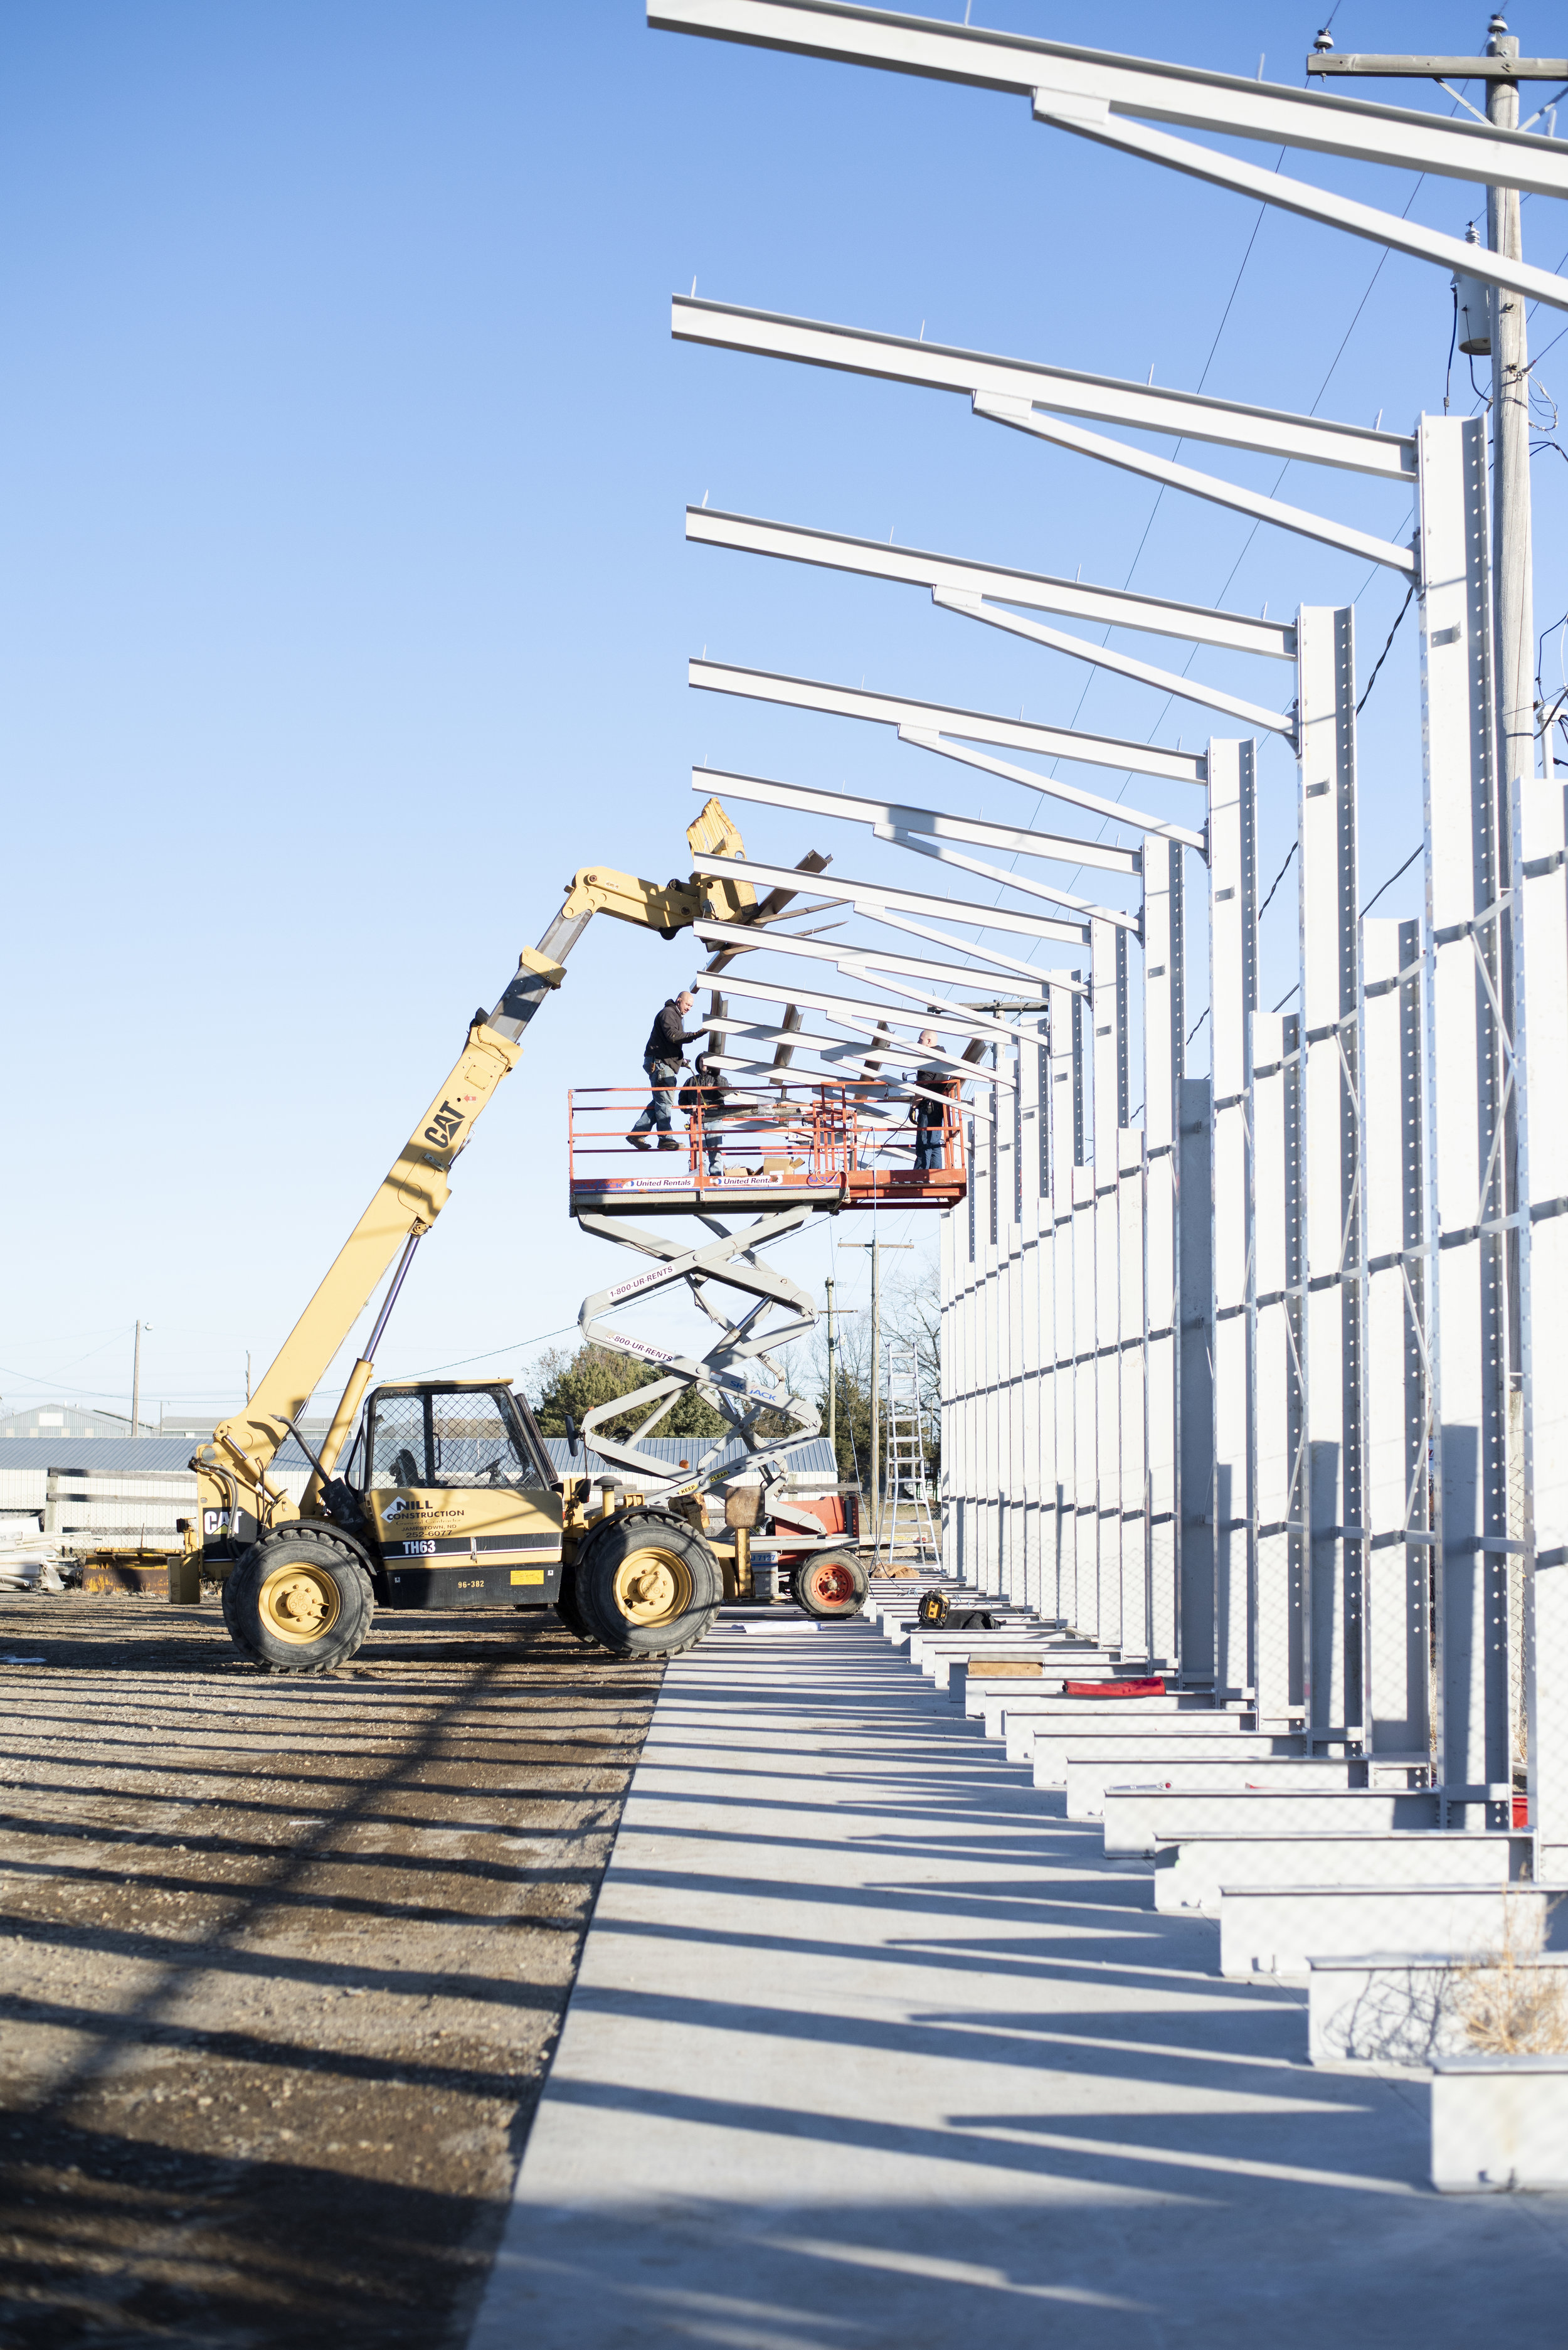 steel-building-commercial-construction-project-Nill-Construction-jamestown-nd.jpg